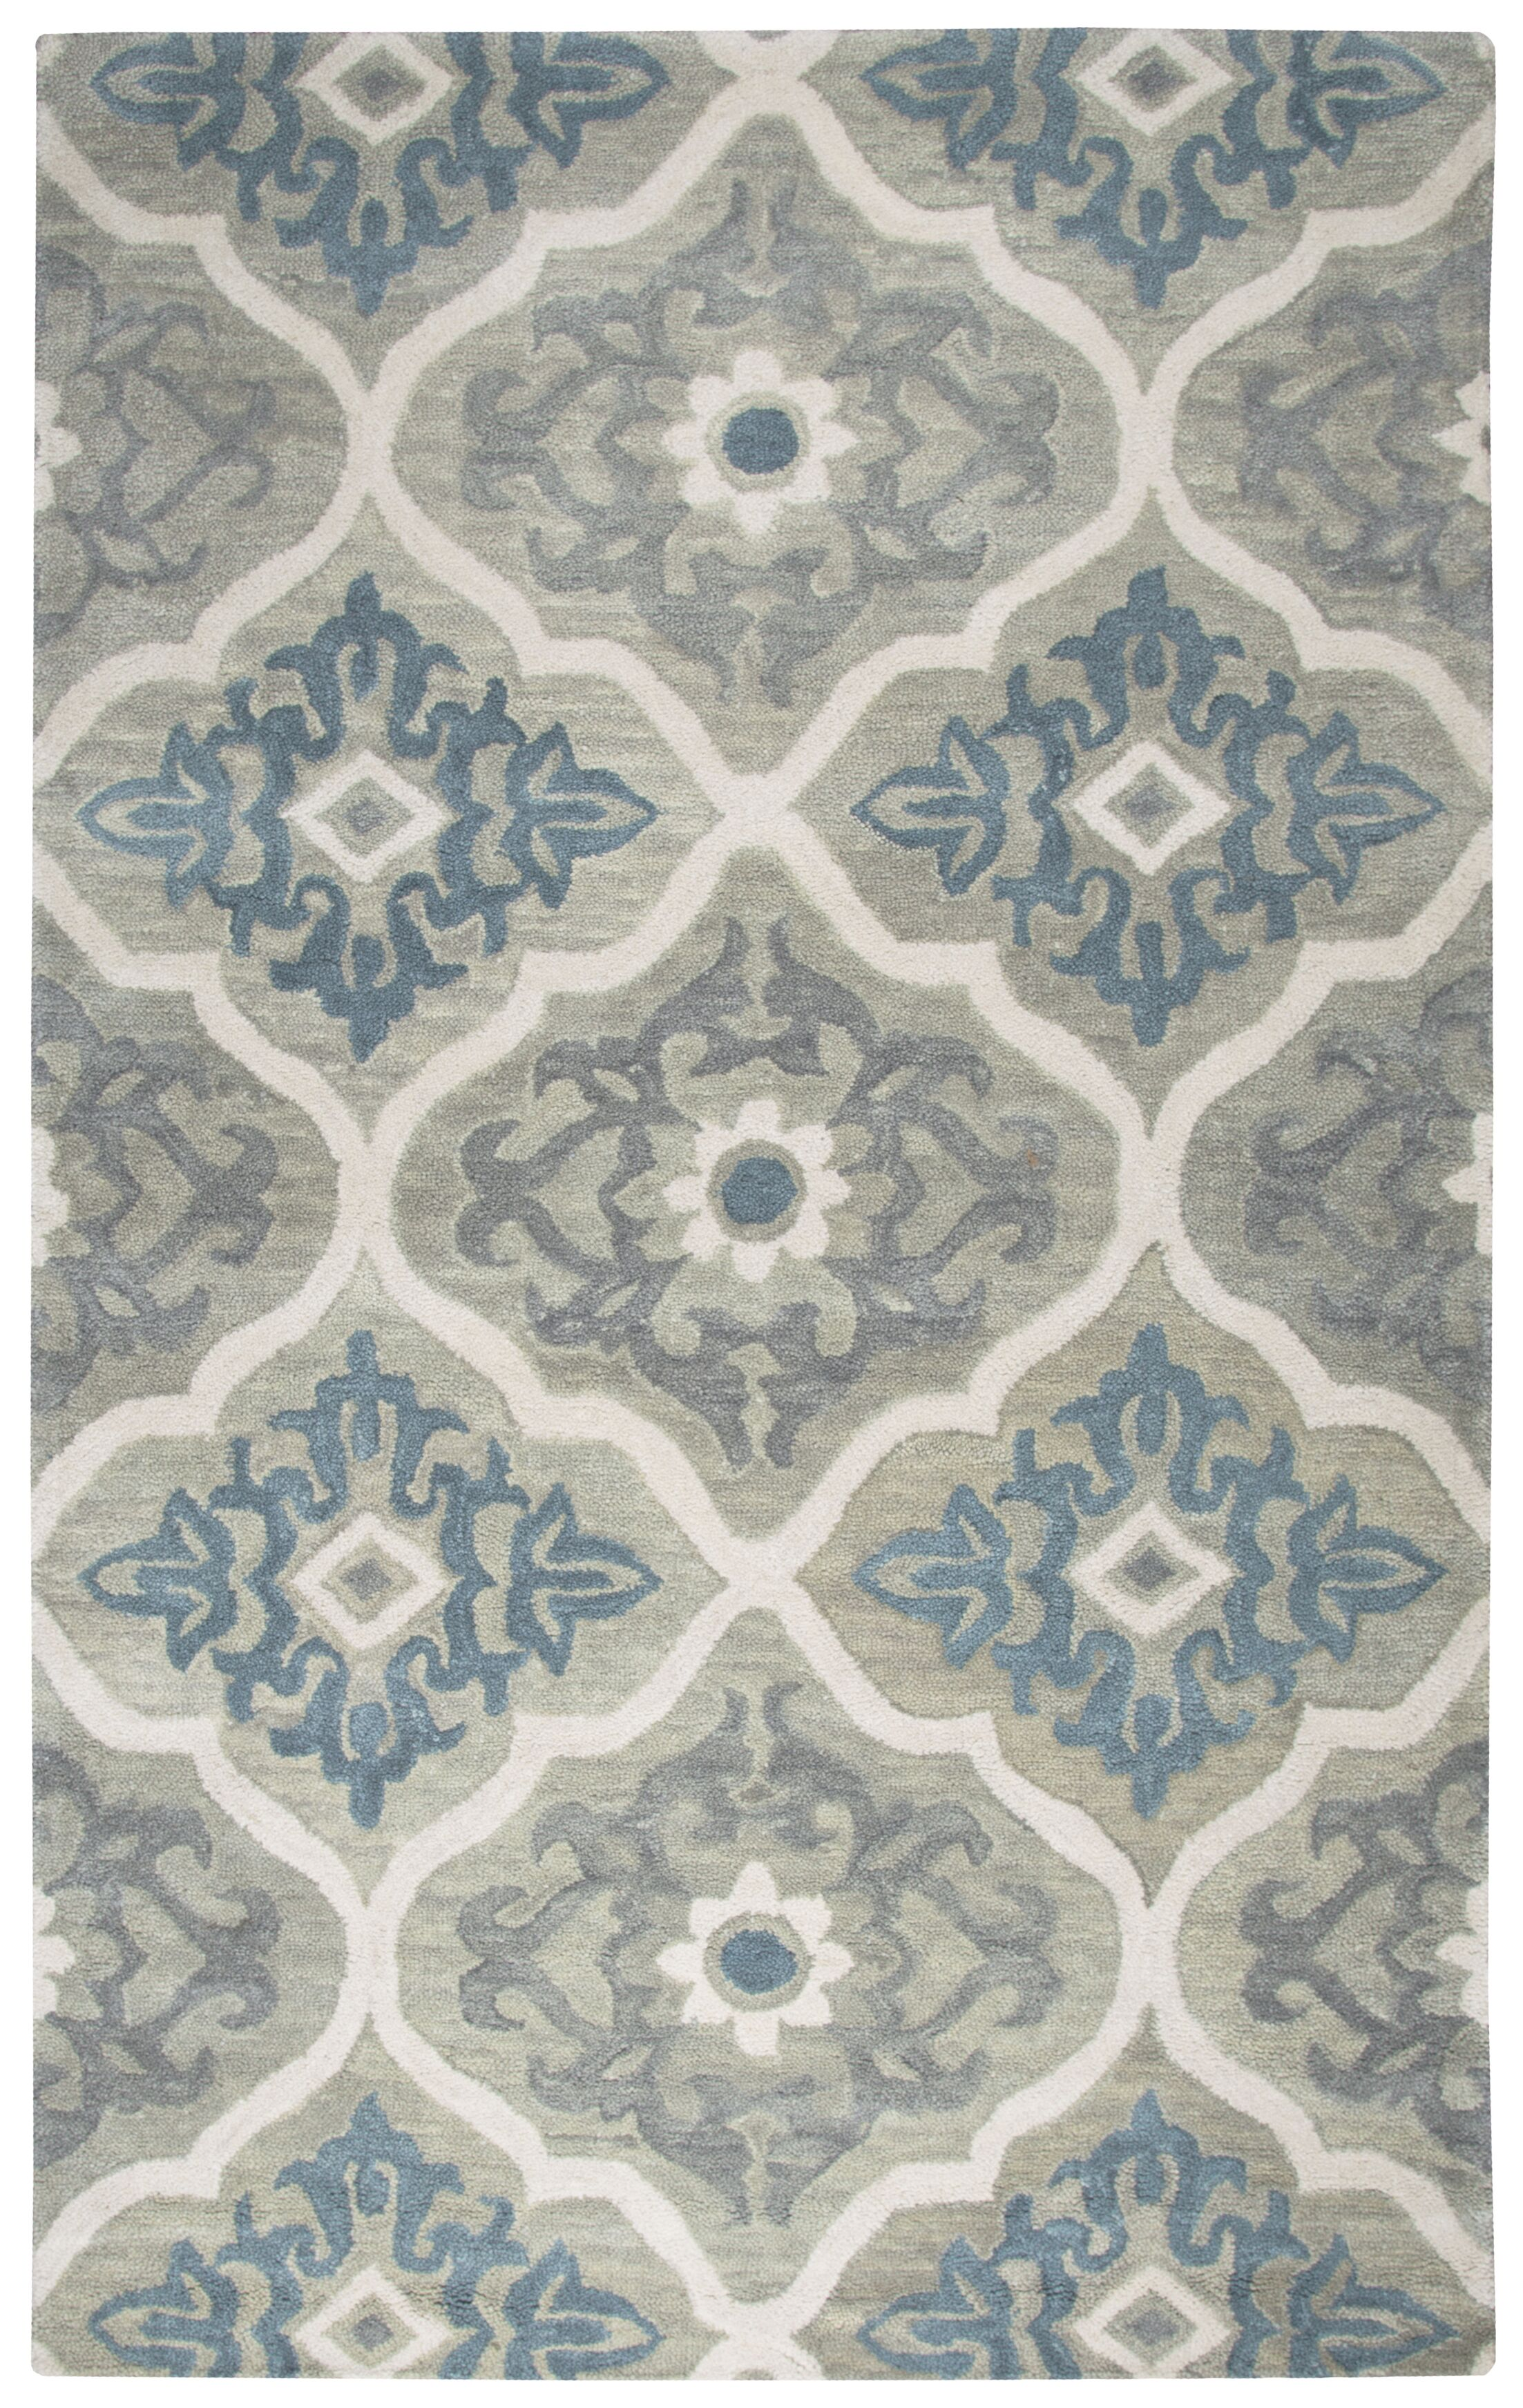 Venedy Hand-Tufted Wool Blue/Gray Area Rug Size: Rectangle 8' x 10'